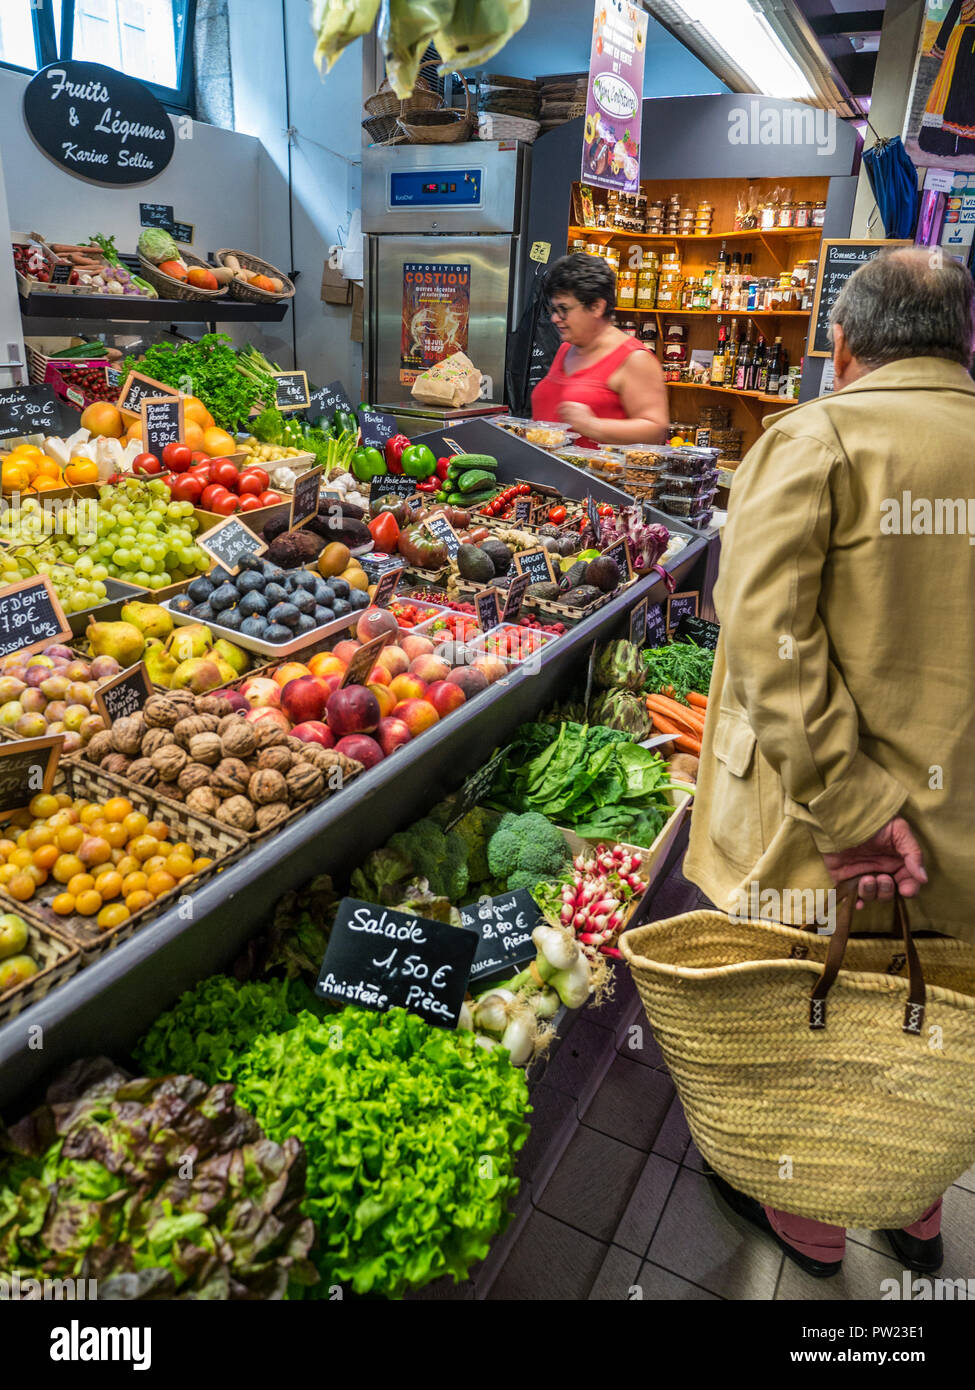 CONCARNEAU COVERED INTERIOR MARKET Fresh French Produce on sale French male shopper & bag in covered Halles market hall Concarneau Brittany France - Stock Image